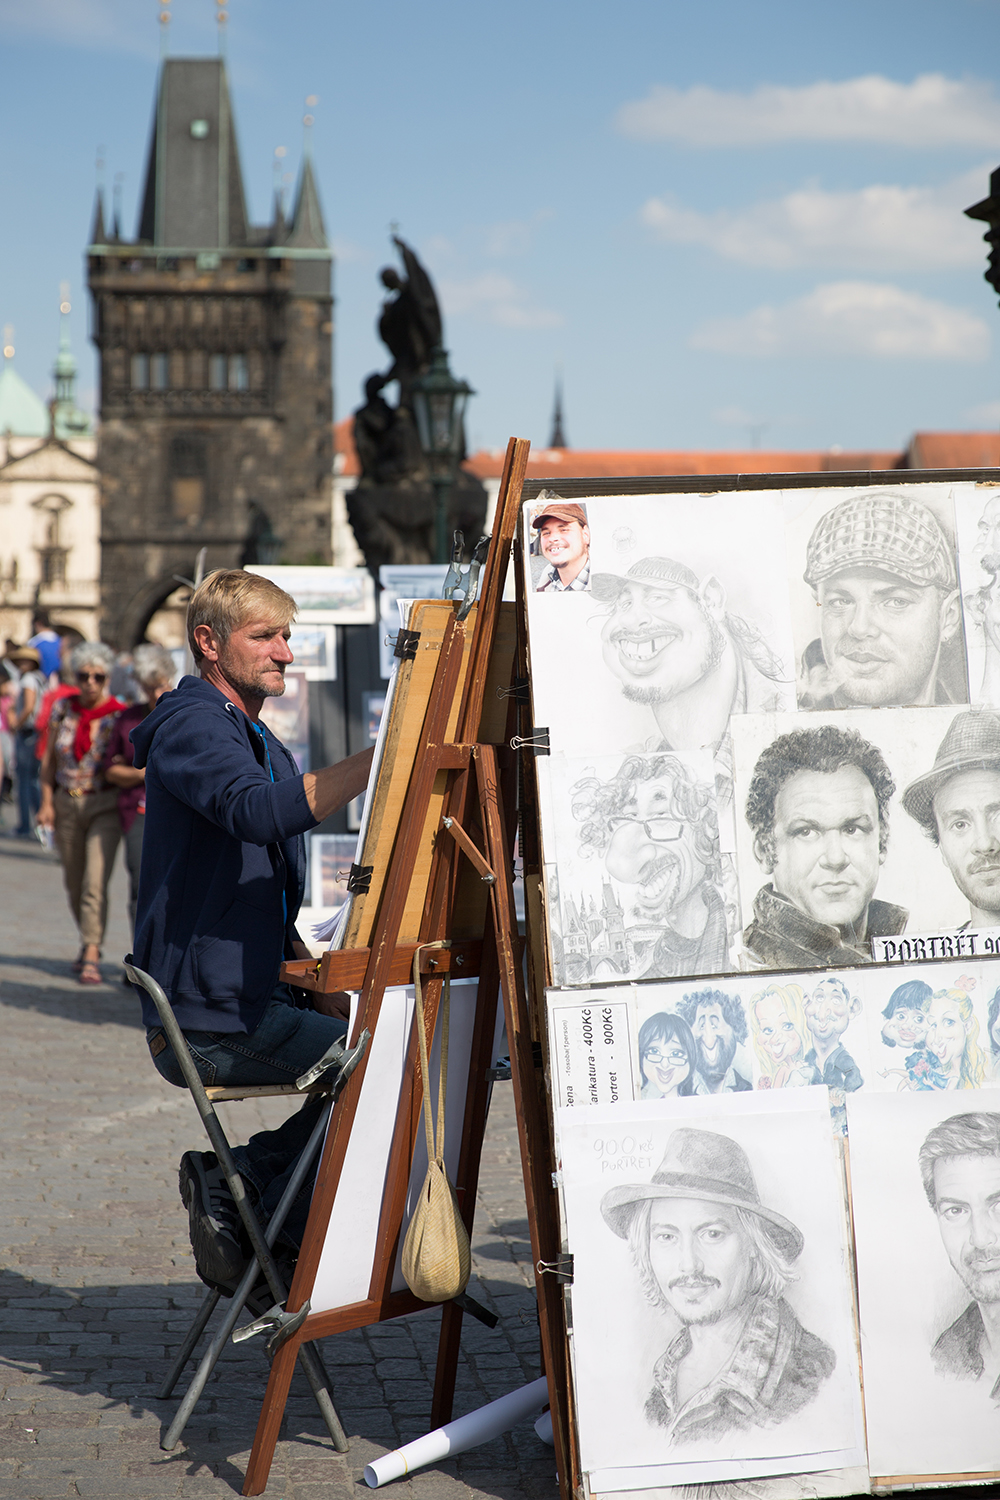 A documentary photograph of an artist drawing portraits for tourist on the bridge in Prague, Czech Republic